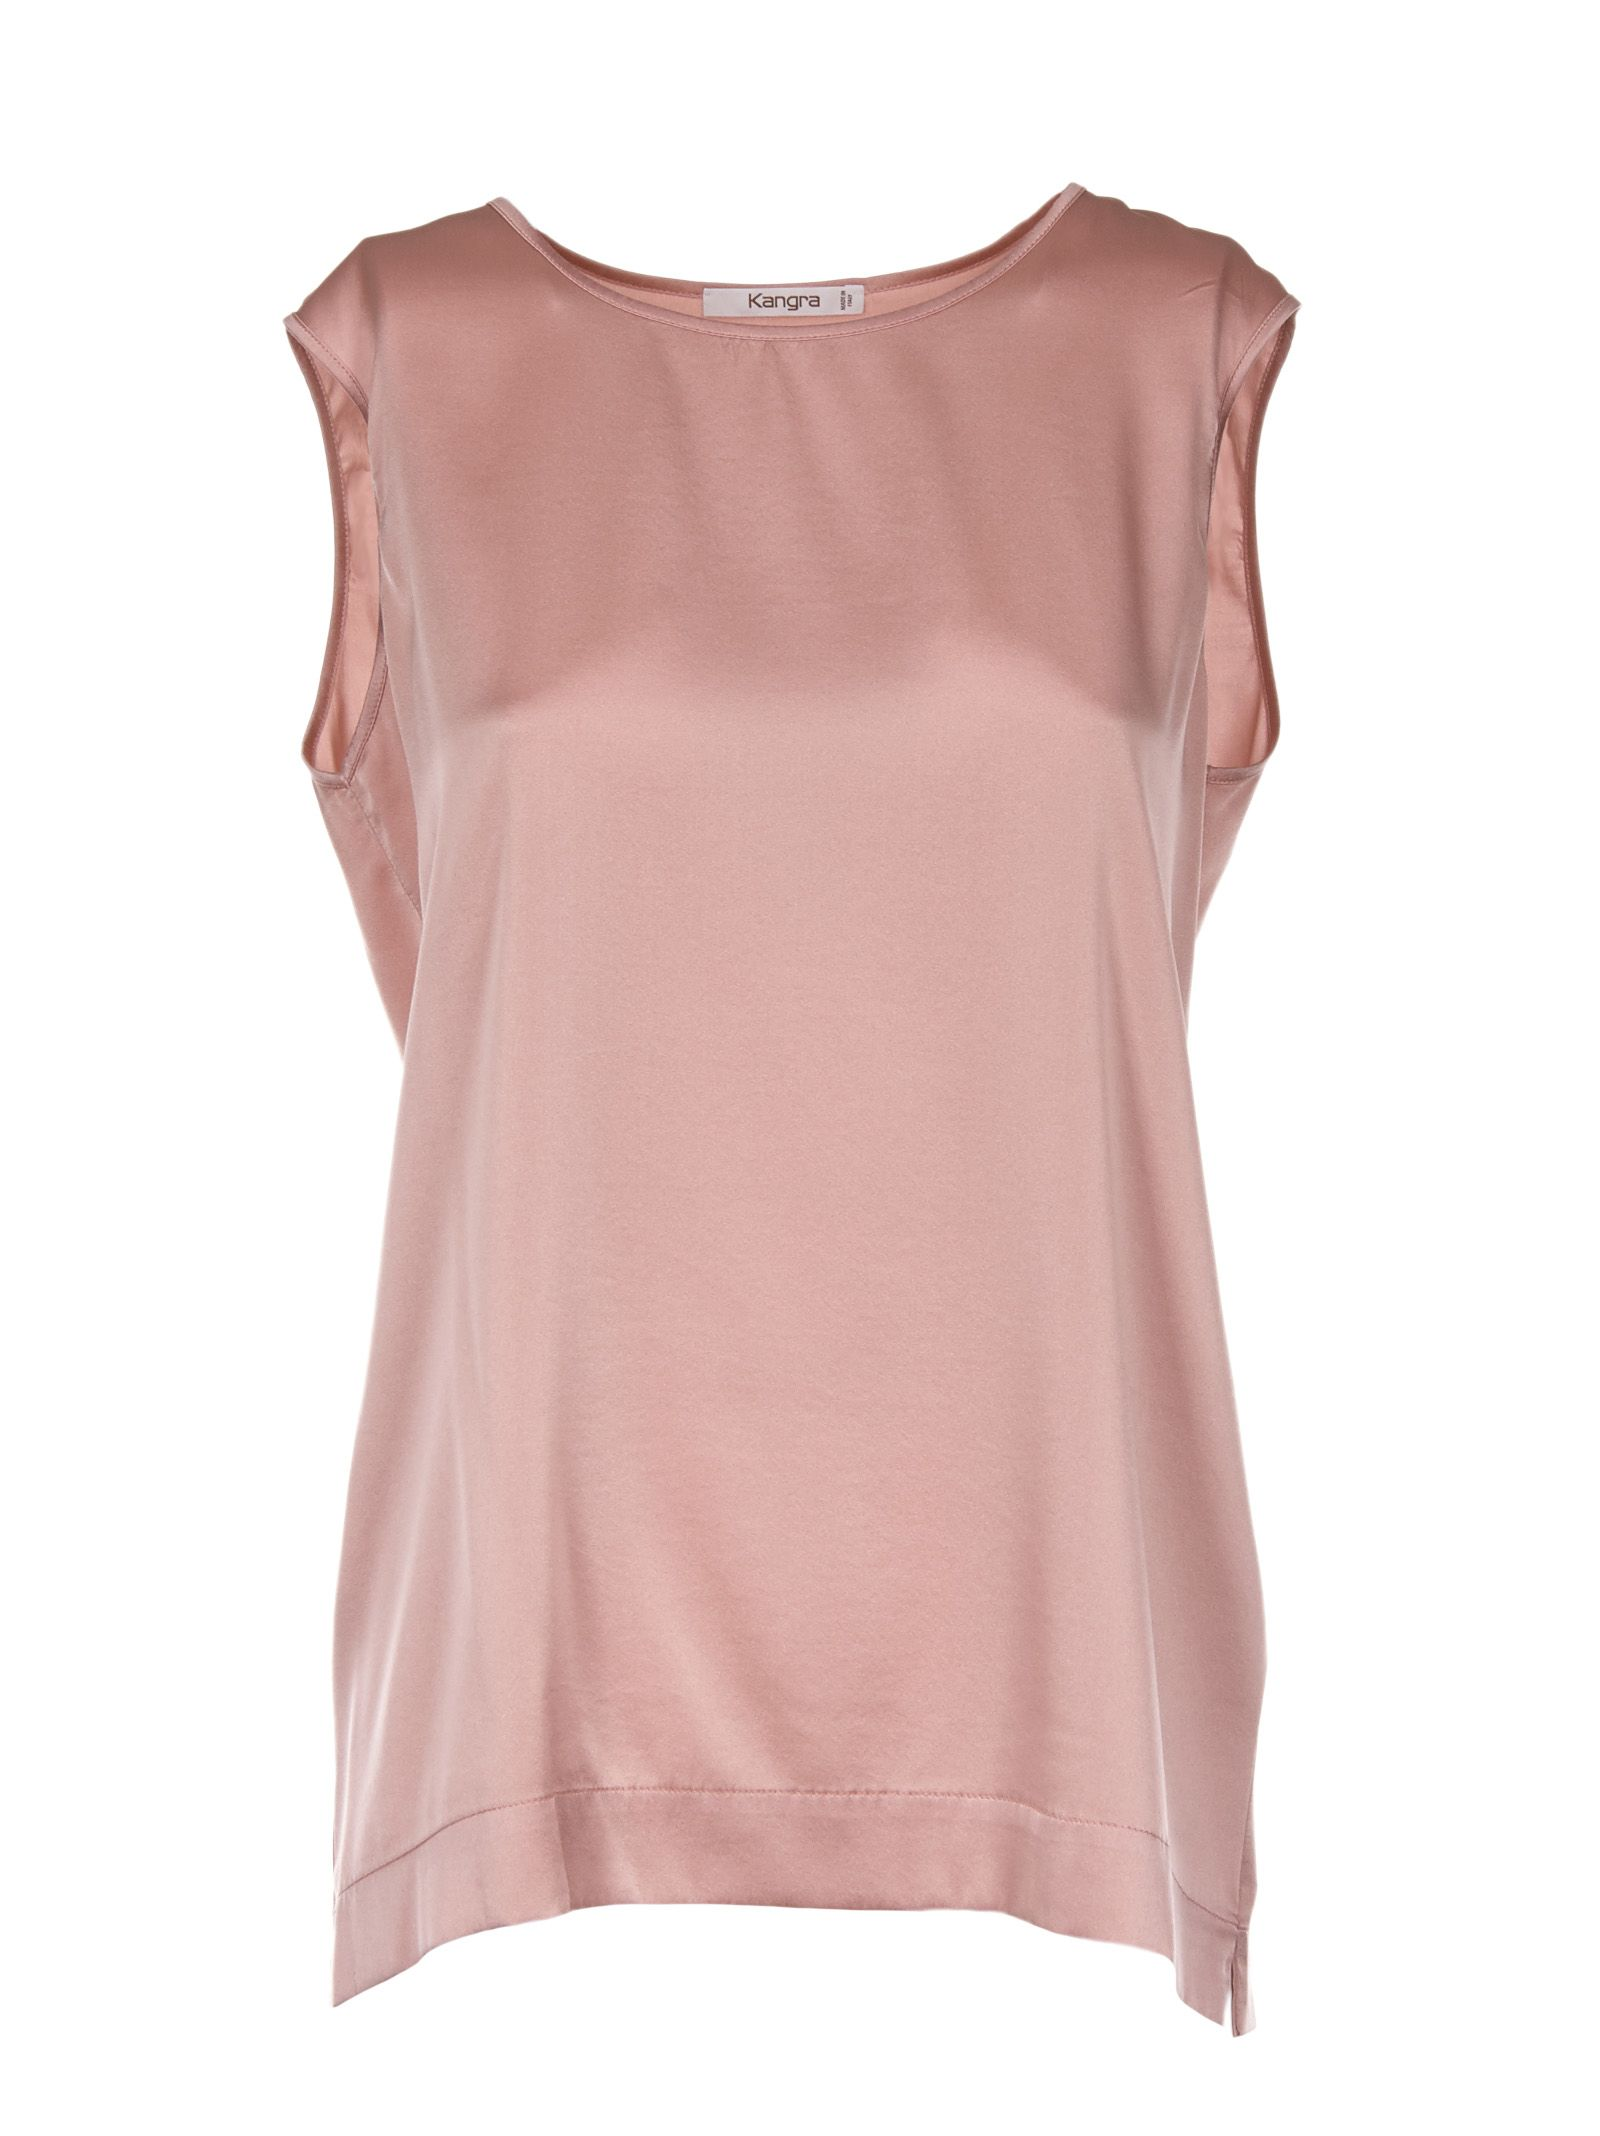 TOPWEAR - Tops Kangra Cashmere Outlet Locations Online Cheap Visit High Quality Low Shipping For Sale Low Price Fee Shipping Online BkMkvfMK